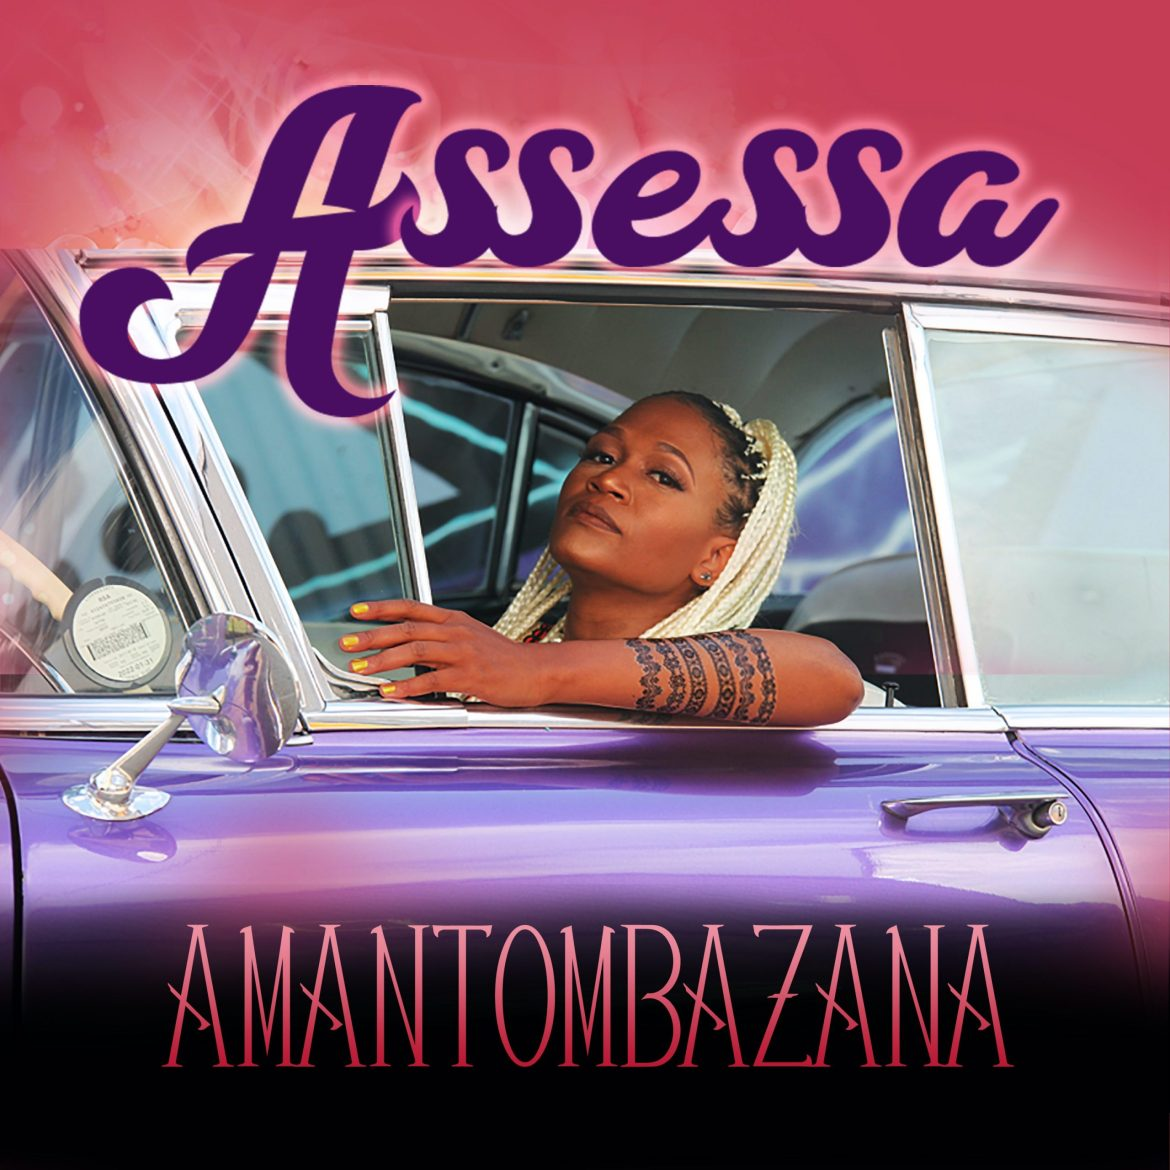 Queen of Rap – Assessa Drops Brand New Music Video for New single Amantombazane, an all-girls party theme song